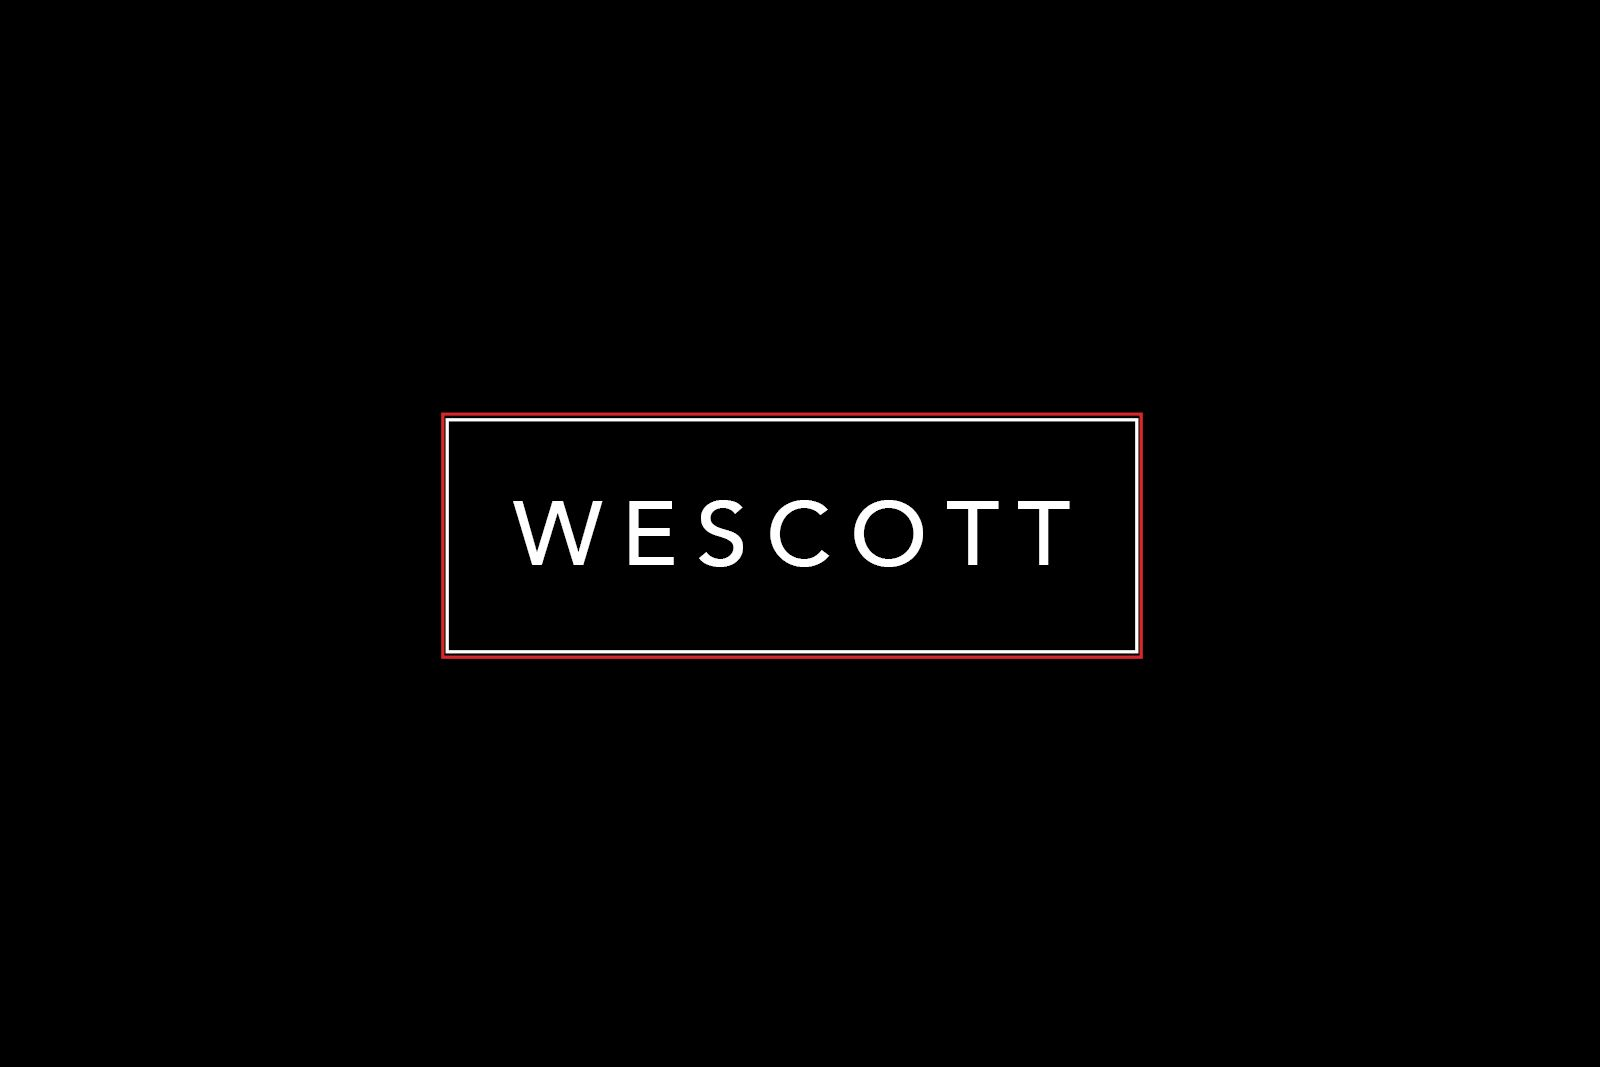 We've welcomed 15 new homeowners to Condos at Wescott in 2 weeks!:Now scheduling VIP Appointments! Own a one-level condo in Swift Creek's newest maintenance-free, community. 2 bed, 2 bath floorplans w/ balconies in an elevator building.Join the VIPs!